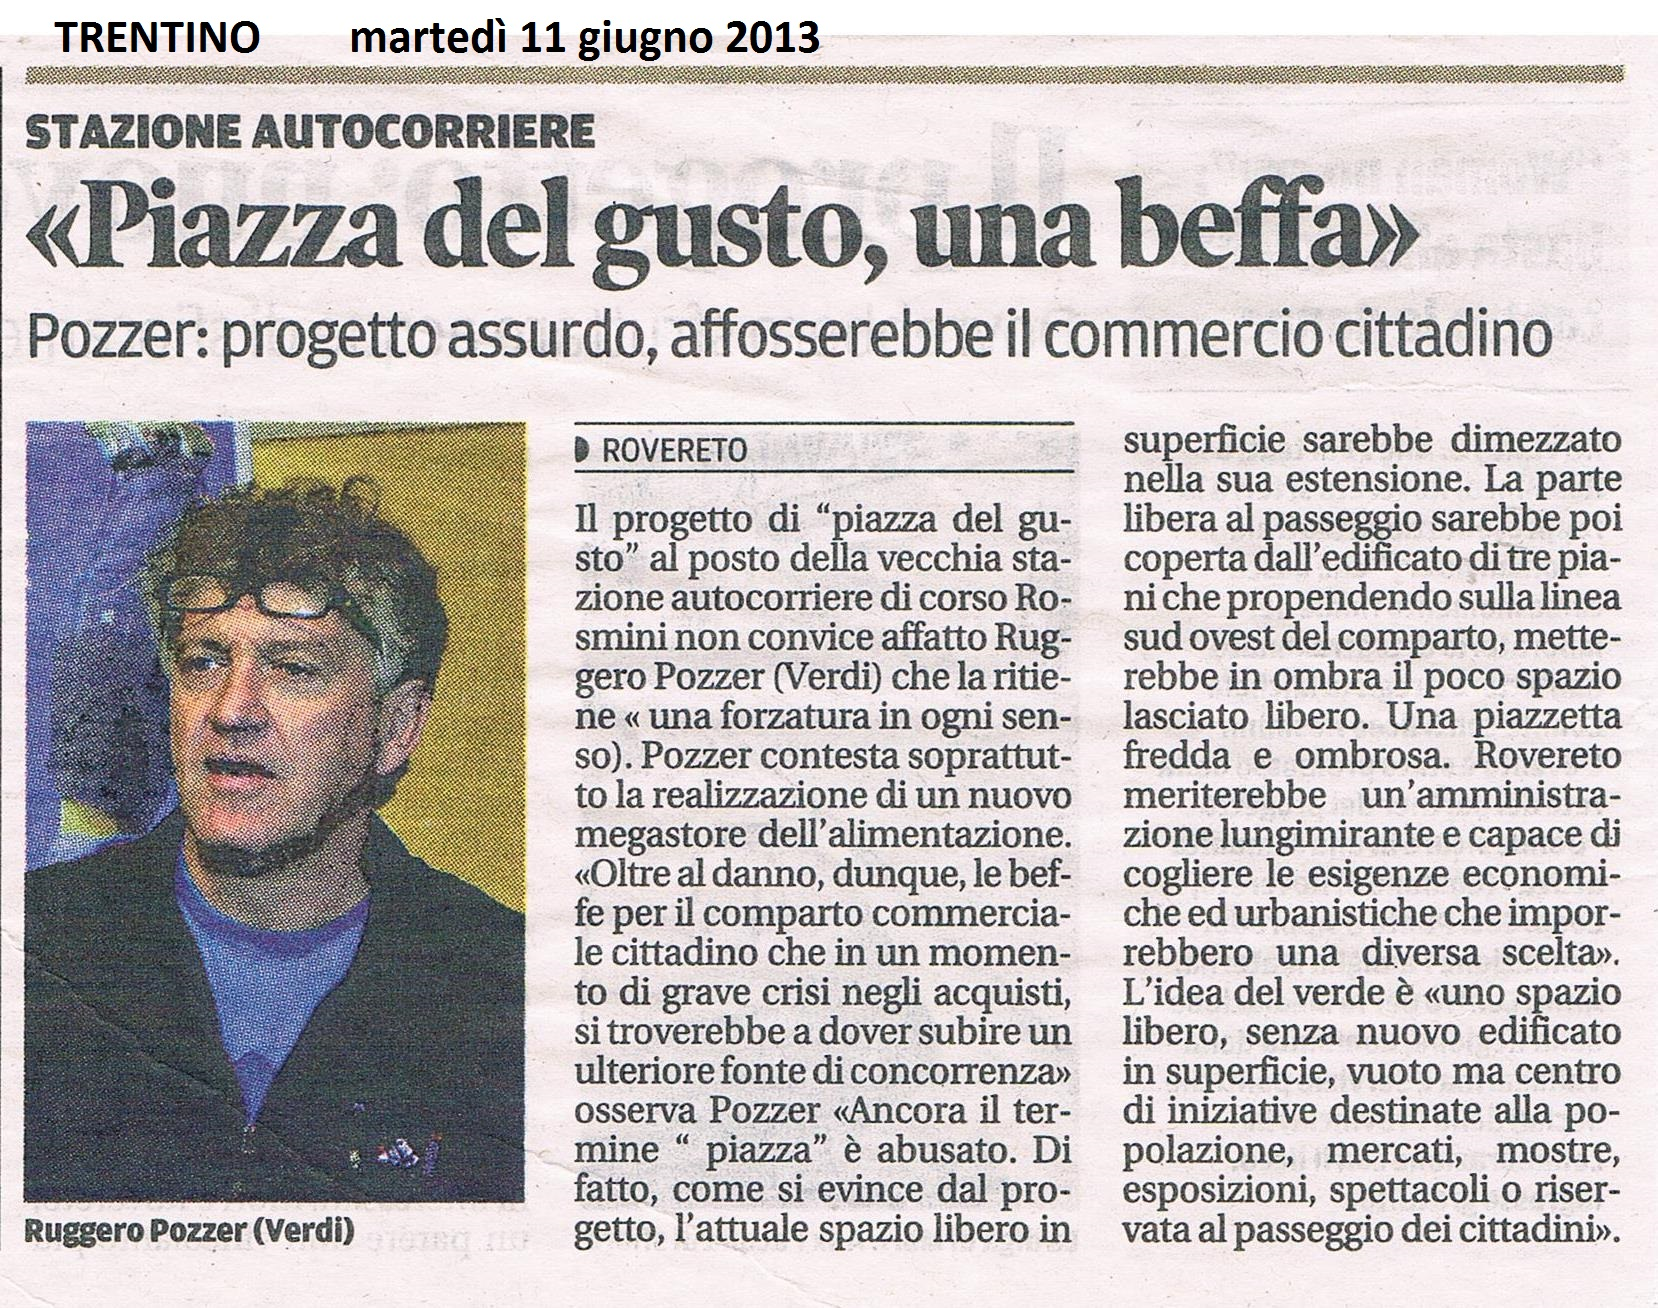 2013-06-11 TN autocorriere 001